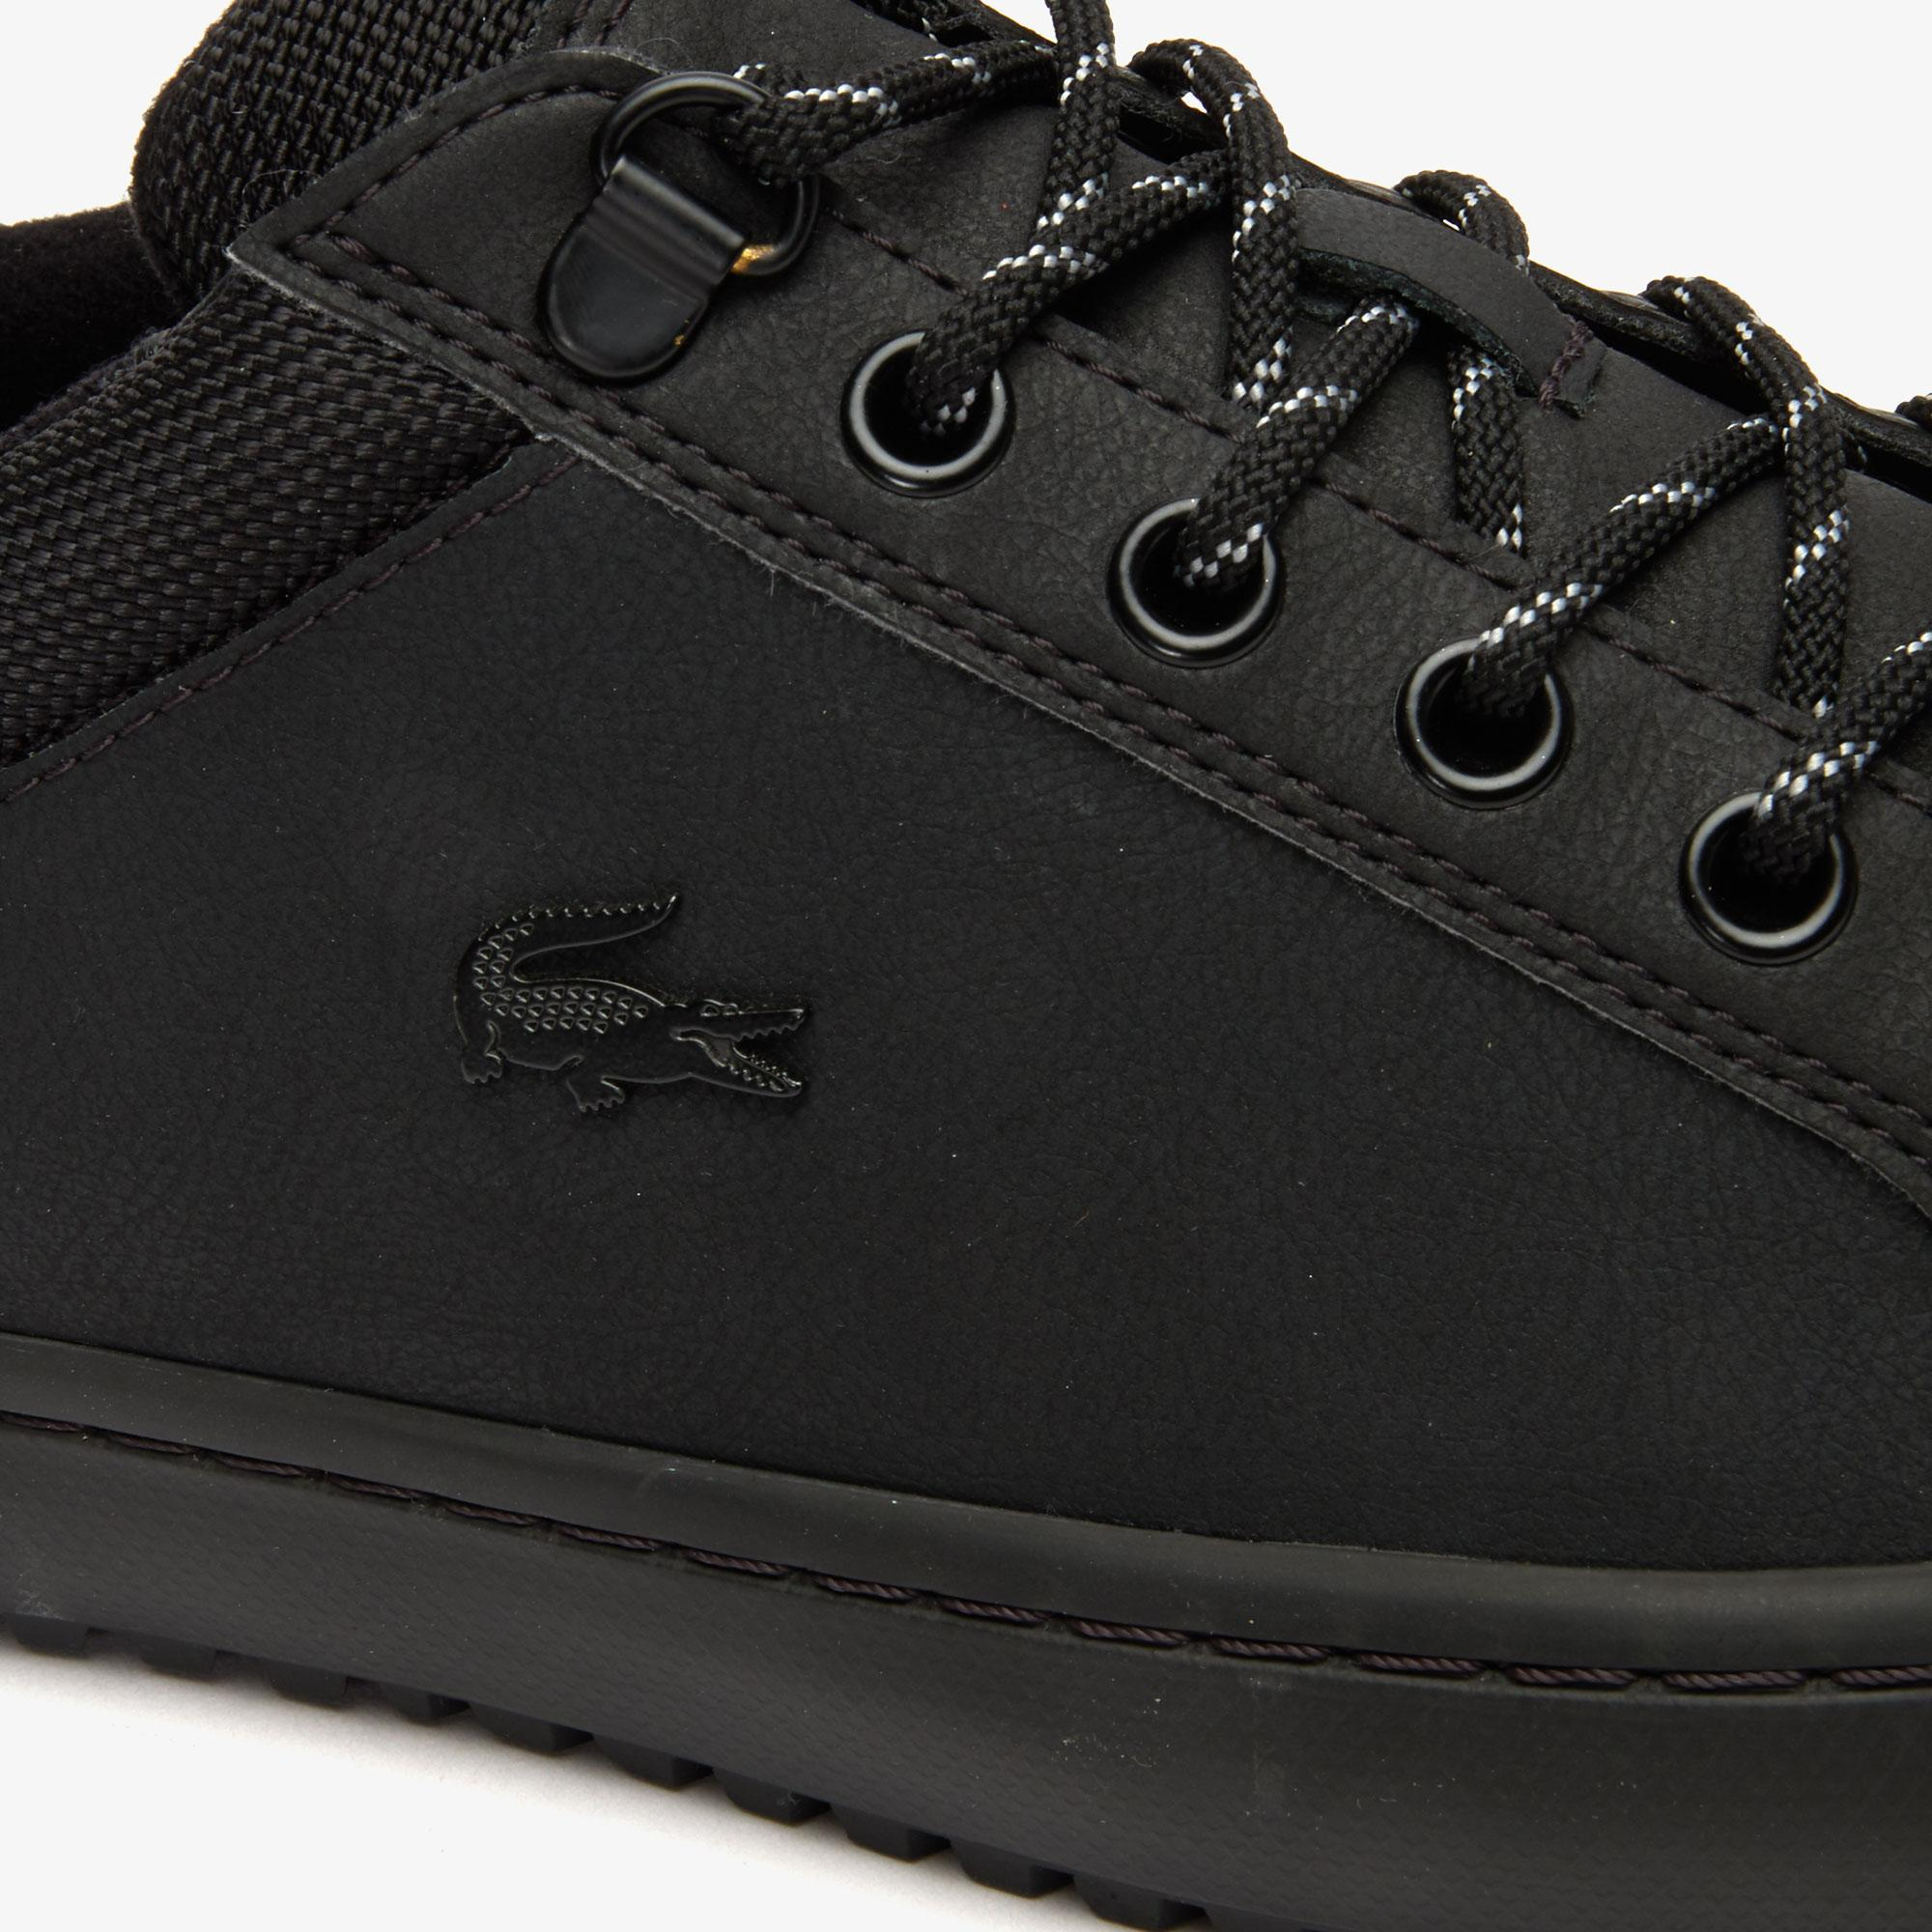 Lacoste Men's Straightset Insulate 319 3 Cma Casual Shoes